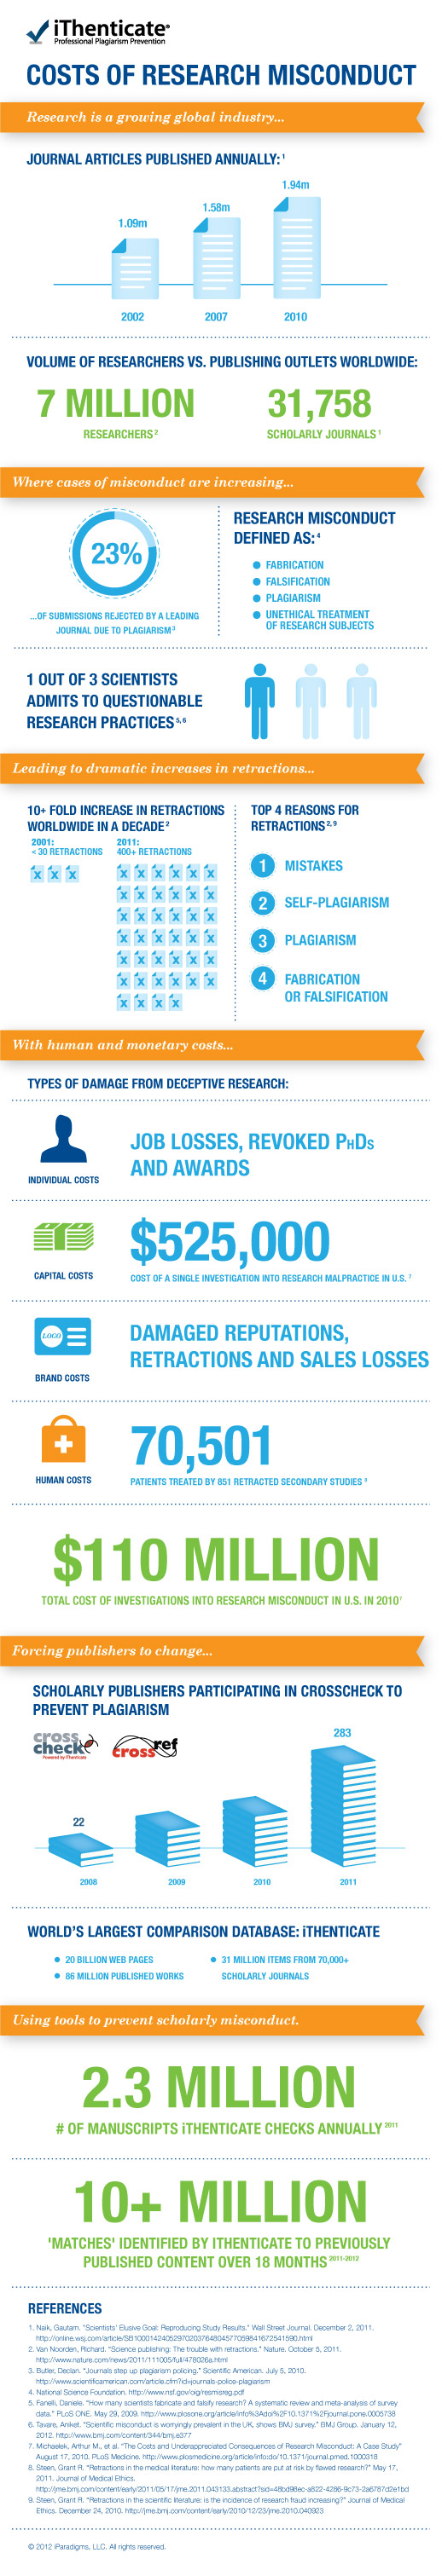 Research Misconduct Infographic